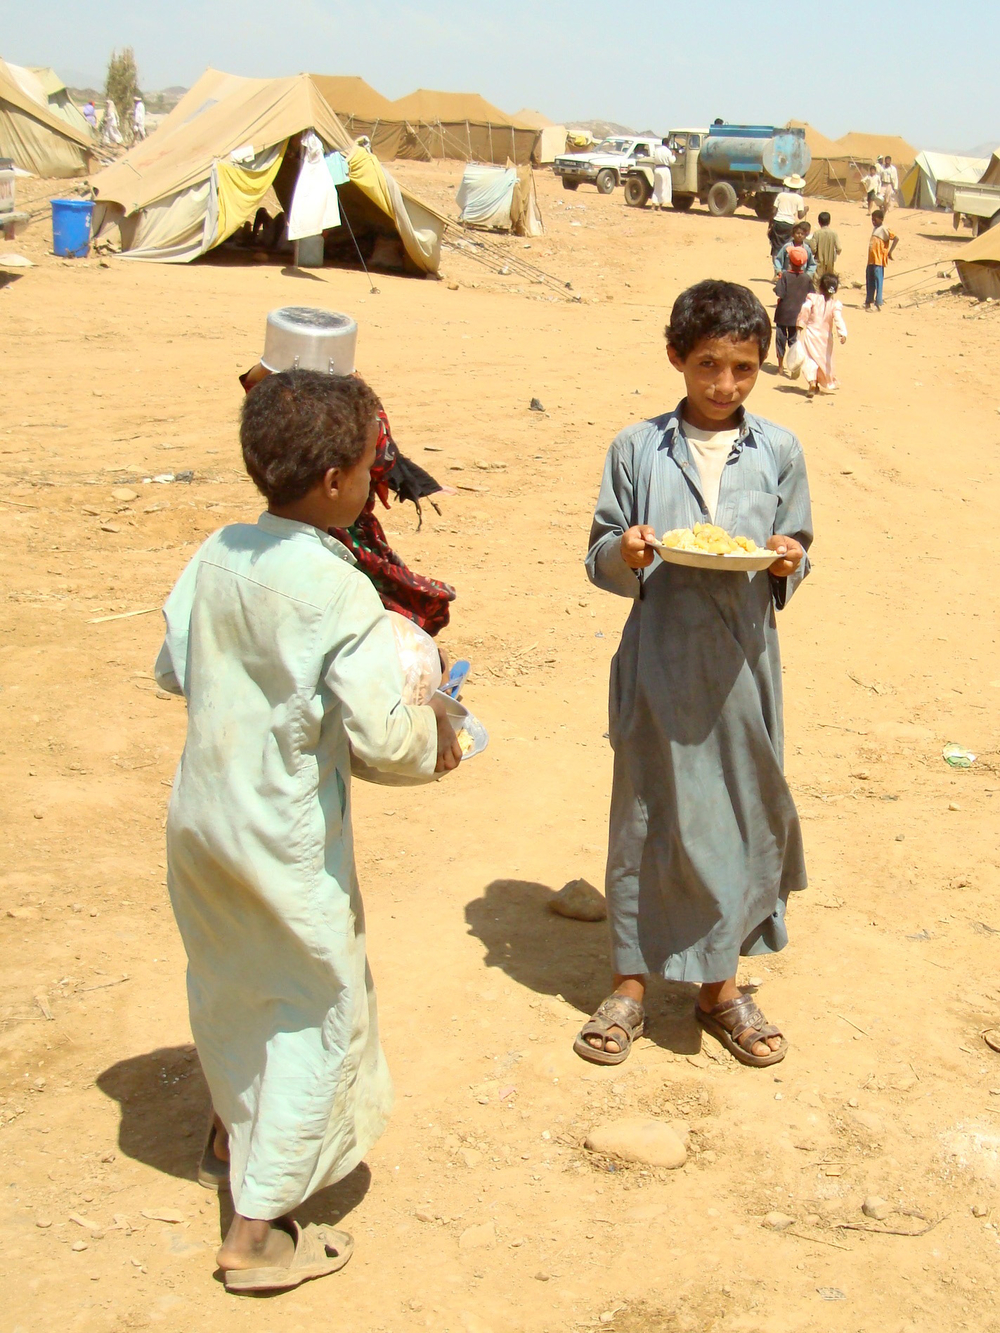 IDP children carrying food for their families in Mazraq One. Recent studies say wide-scale starvation looms over millions of Yemenis due to price hikes